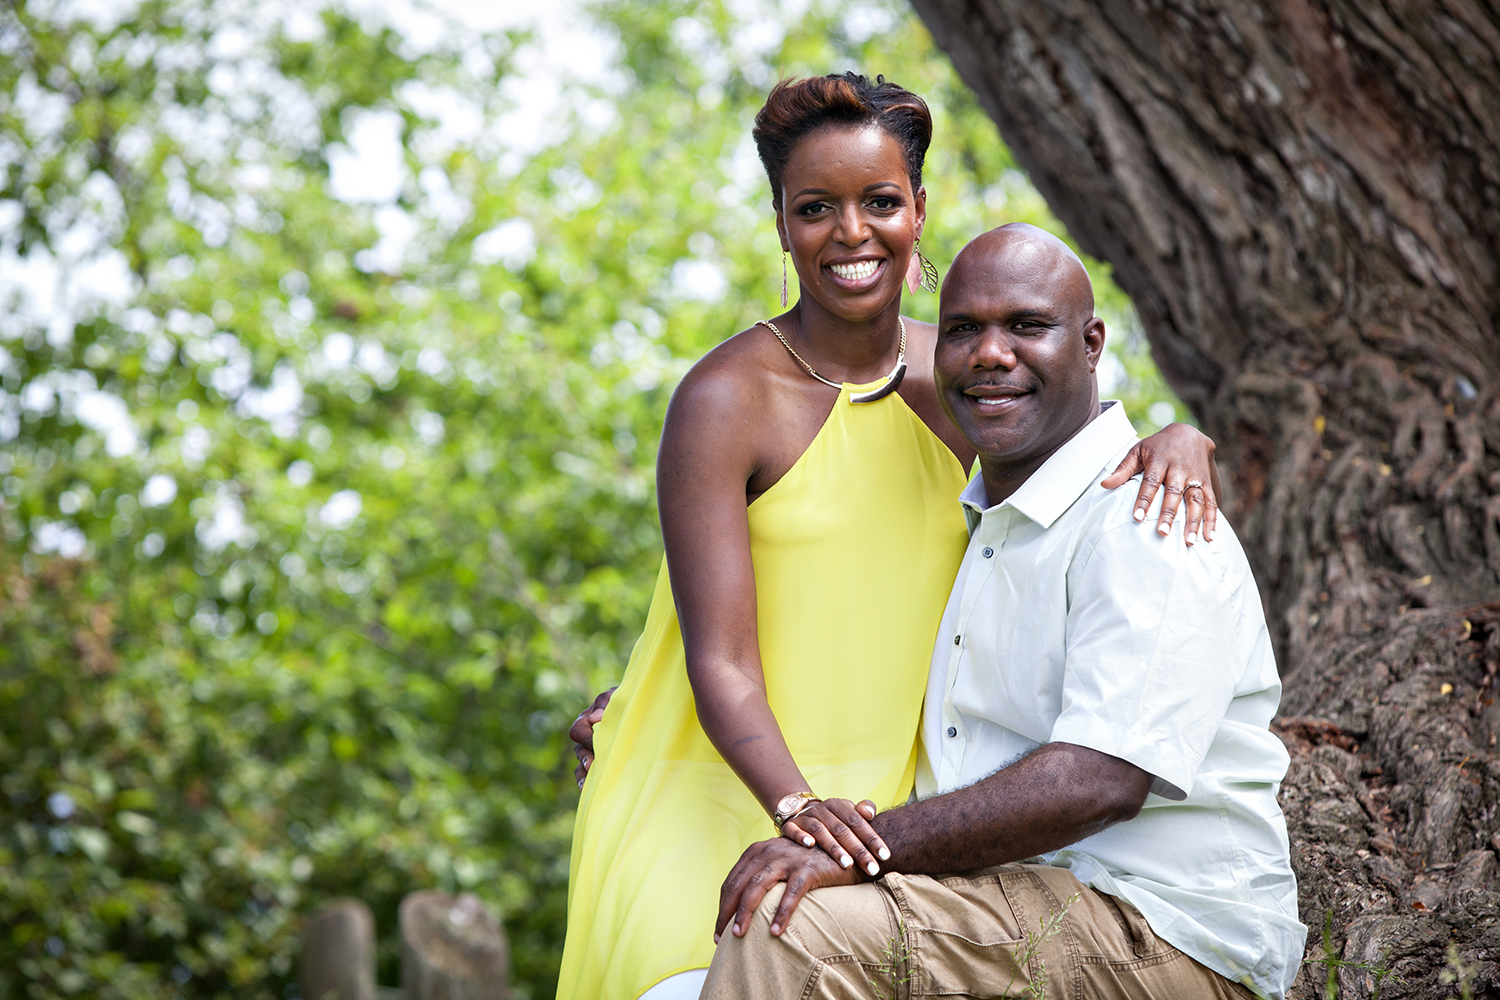 Ajax Photographer shot a Couple smiling at Rotary Park in Ajax during their Engagement Shoot